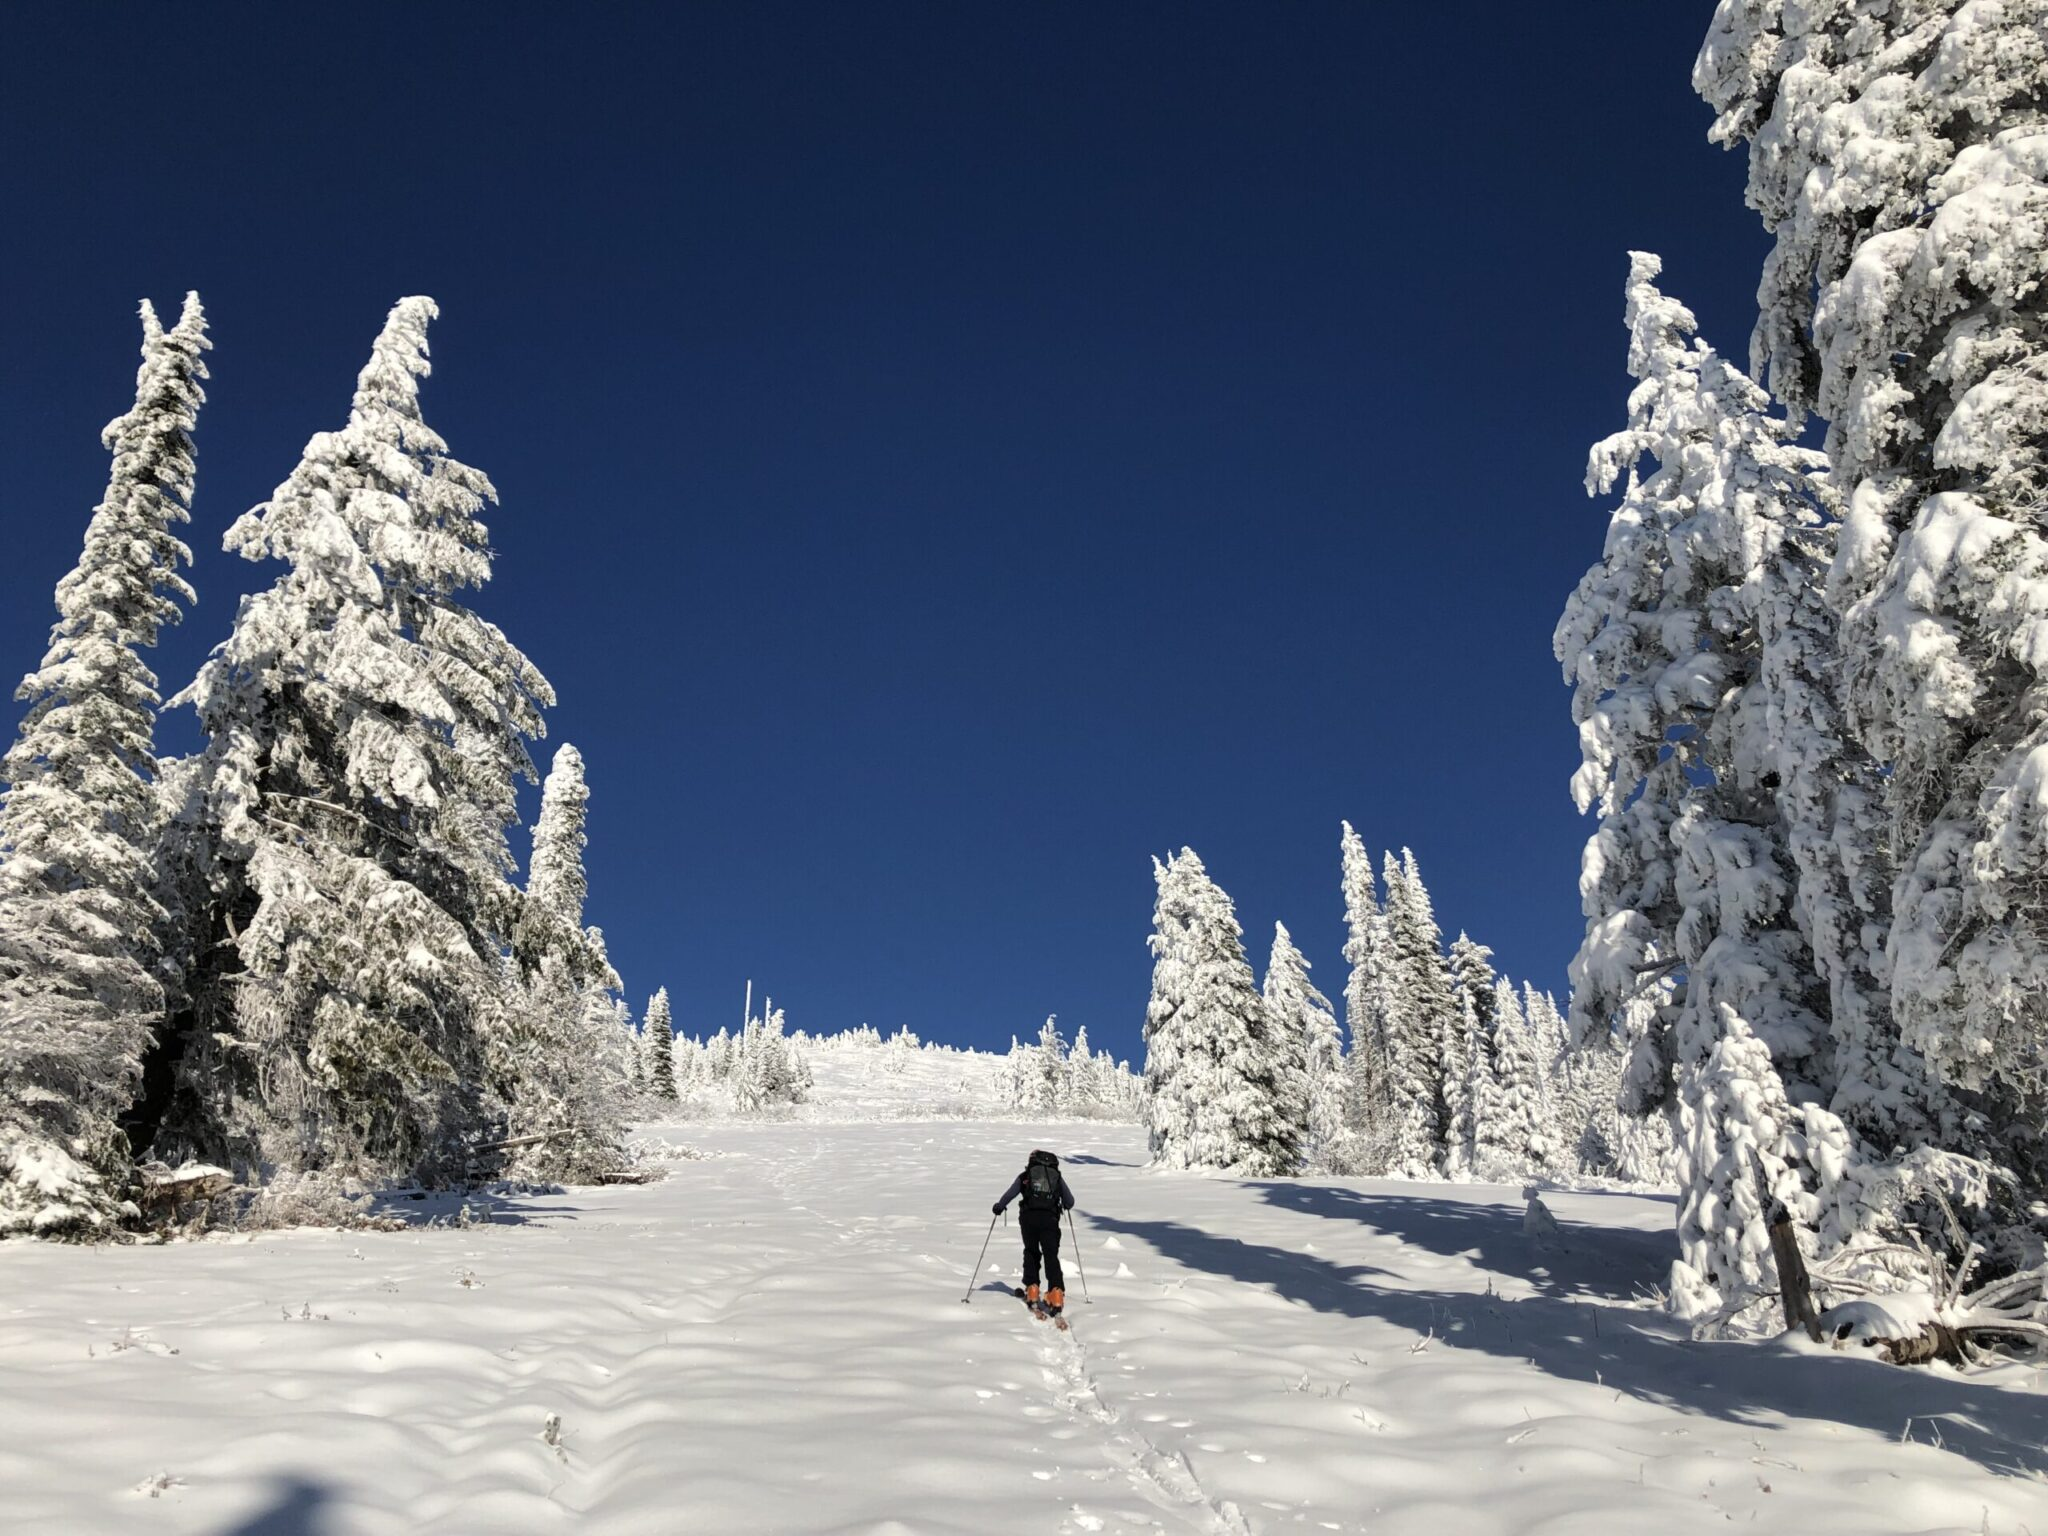 Skier going uphill to the summit of Mt. Spokane.